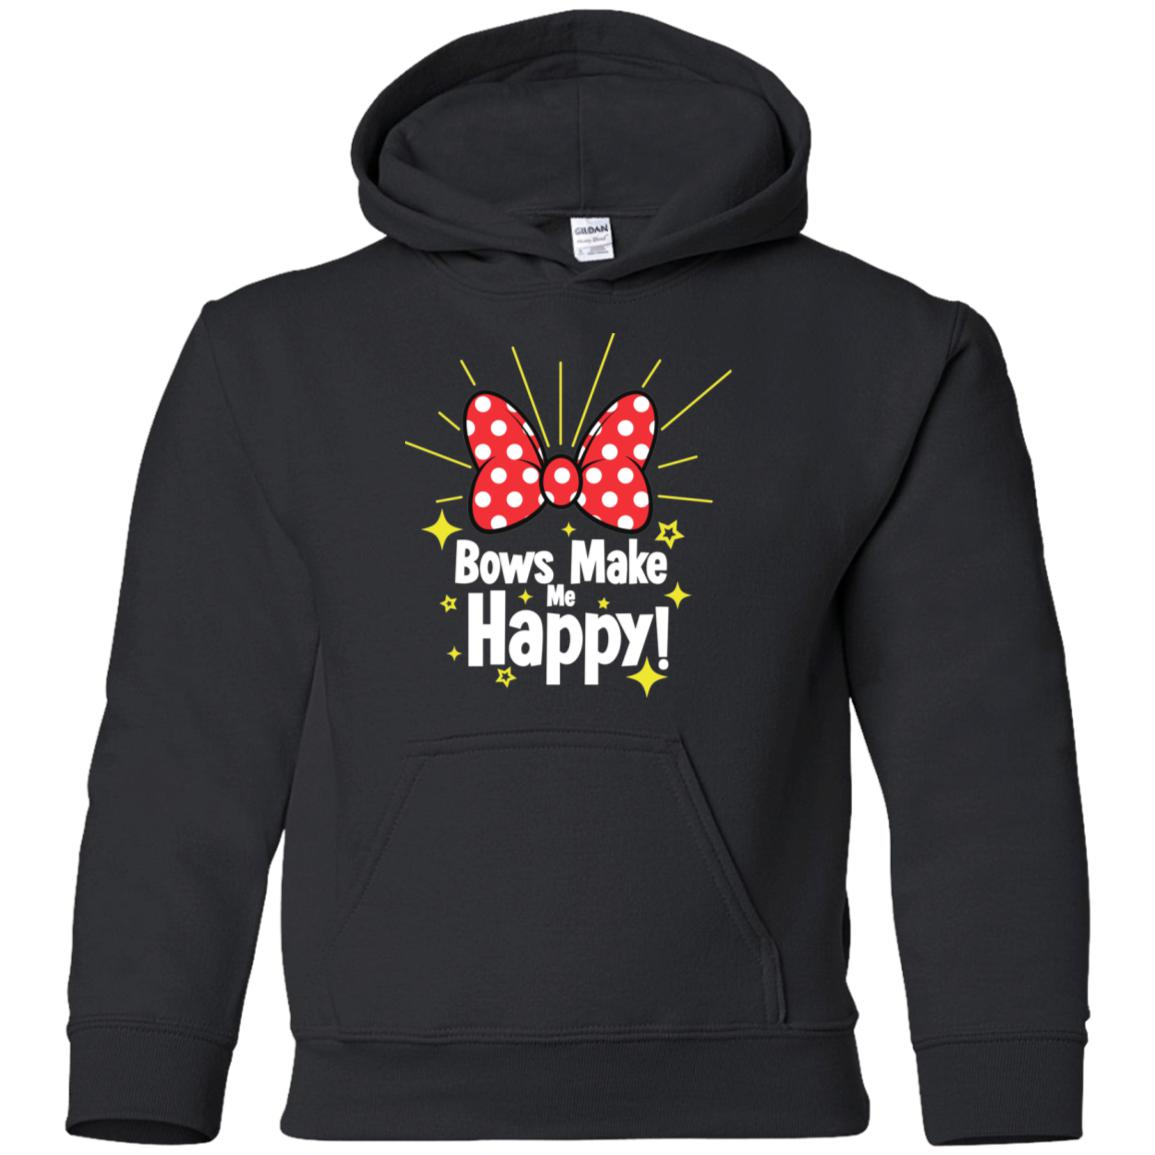 Bows Make Me Happy - Gildan Youth Pullover Hoodie